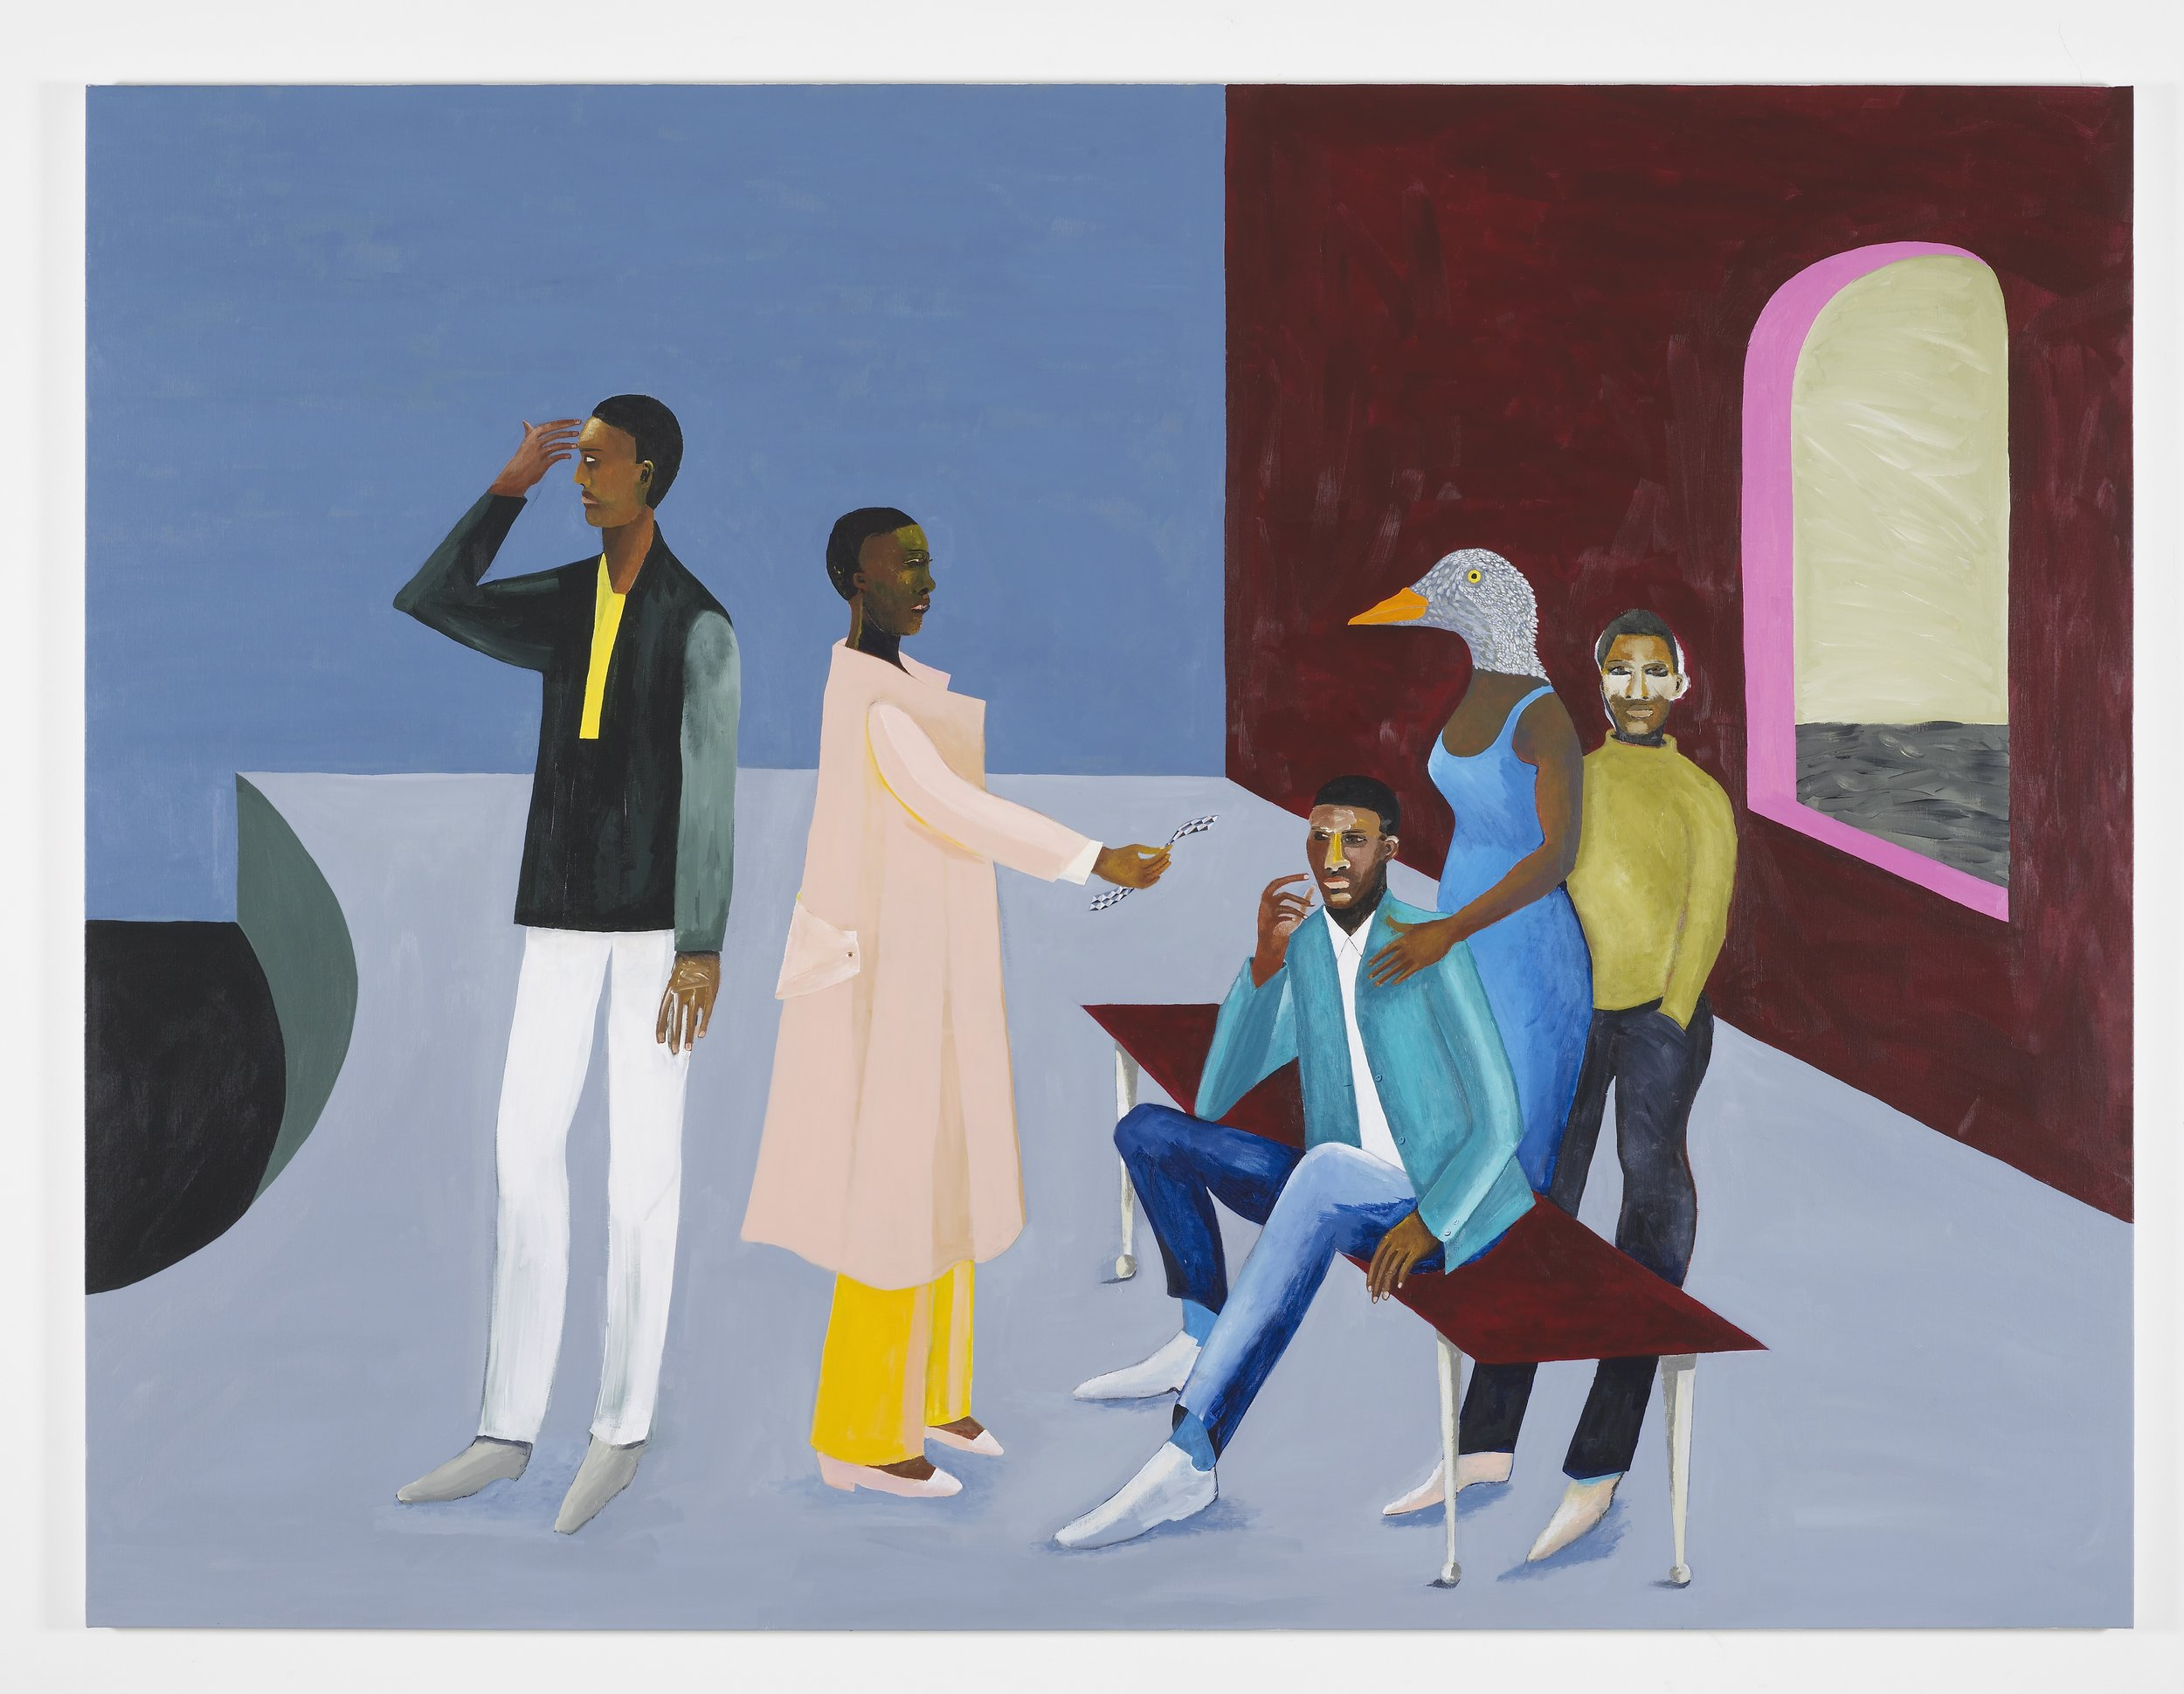 Lubaina Himid, Le Rodeur: The Exchange, 2016. Acrylic on canvas, 72 x 96 1/8 in (183 x 244 cm). Courtesy the artist and Hollybush Gardens. Photo: Andy Keat